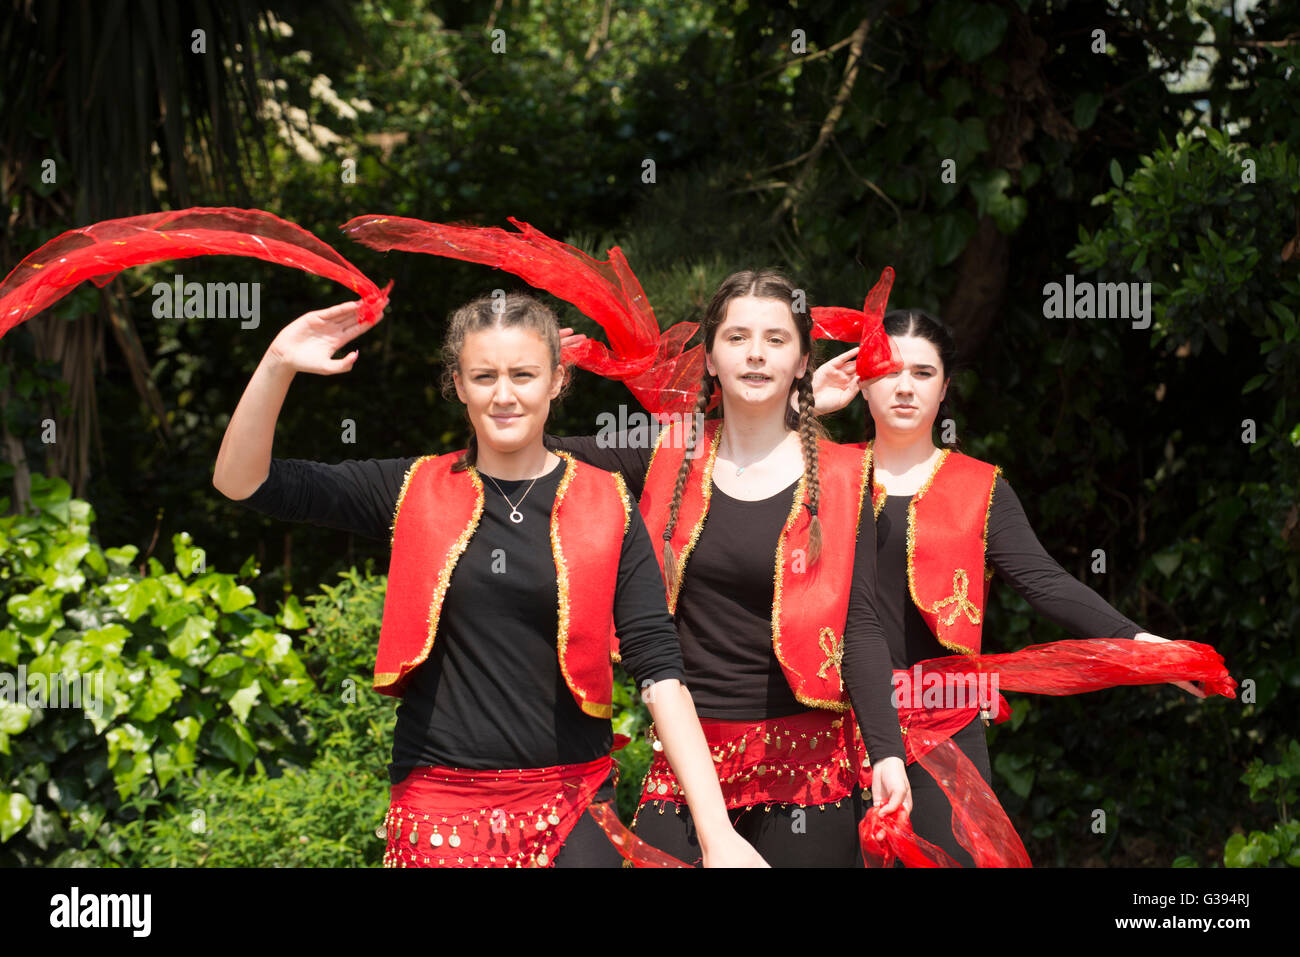 London Golders Green Childs Hill Park Albanian Community Childrens' Day Festival young teenagers national costume - Stock Image